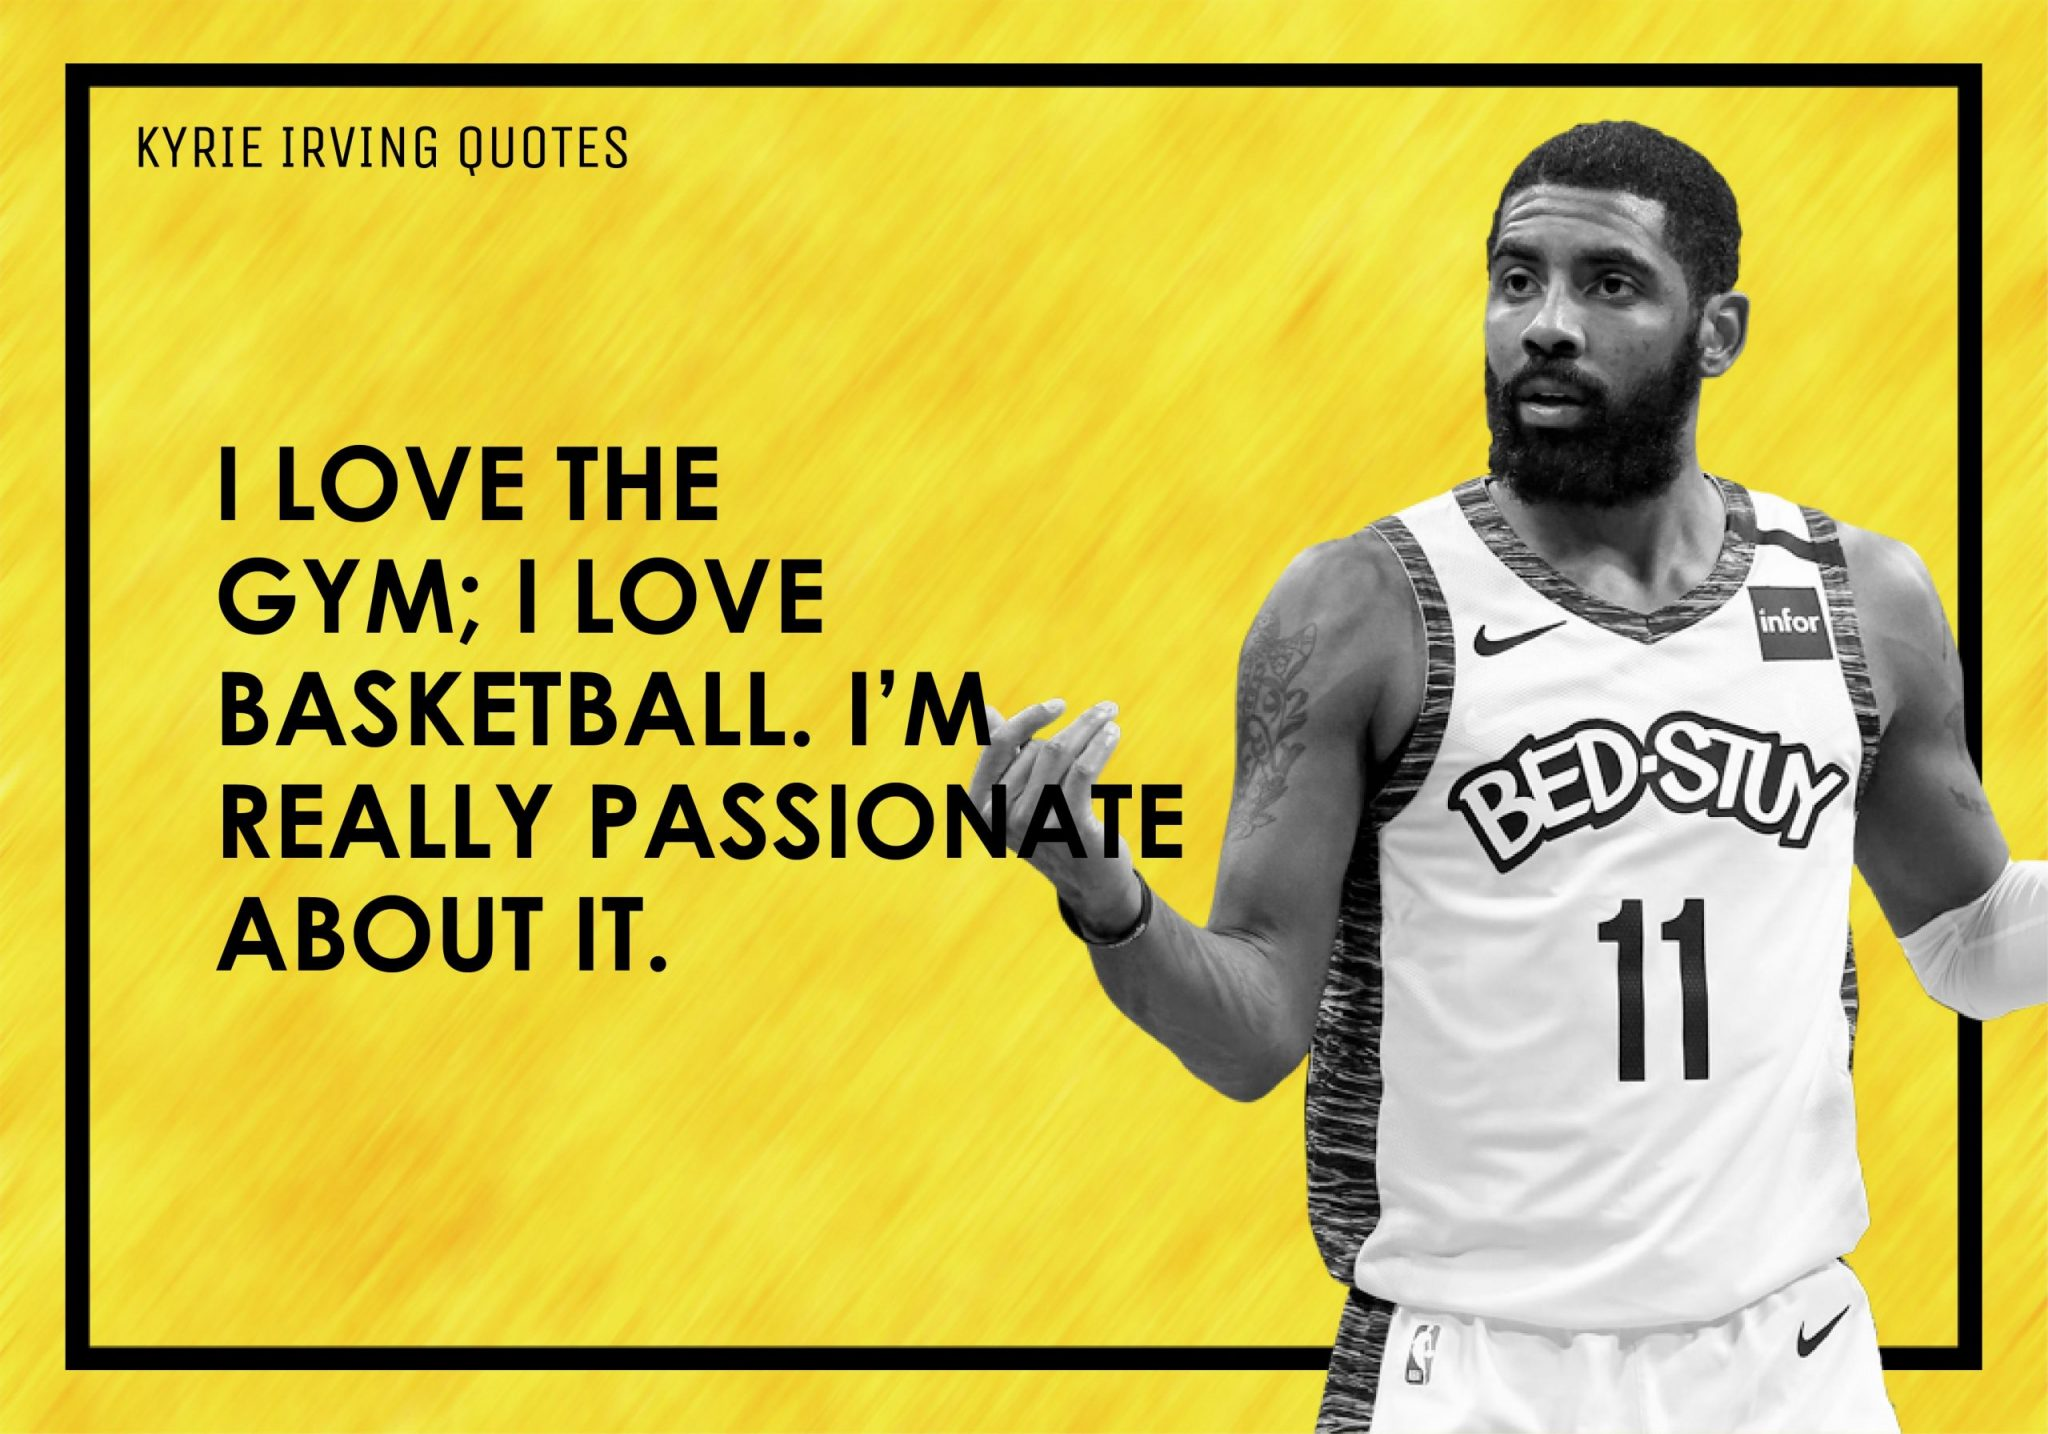 Kyrie Irving Quotes (12)